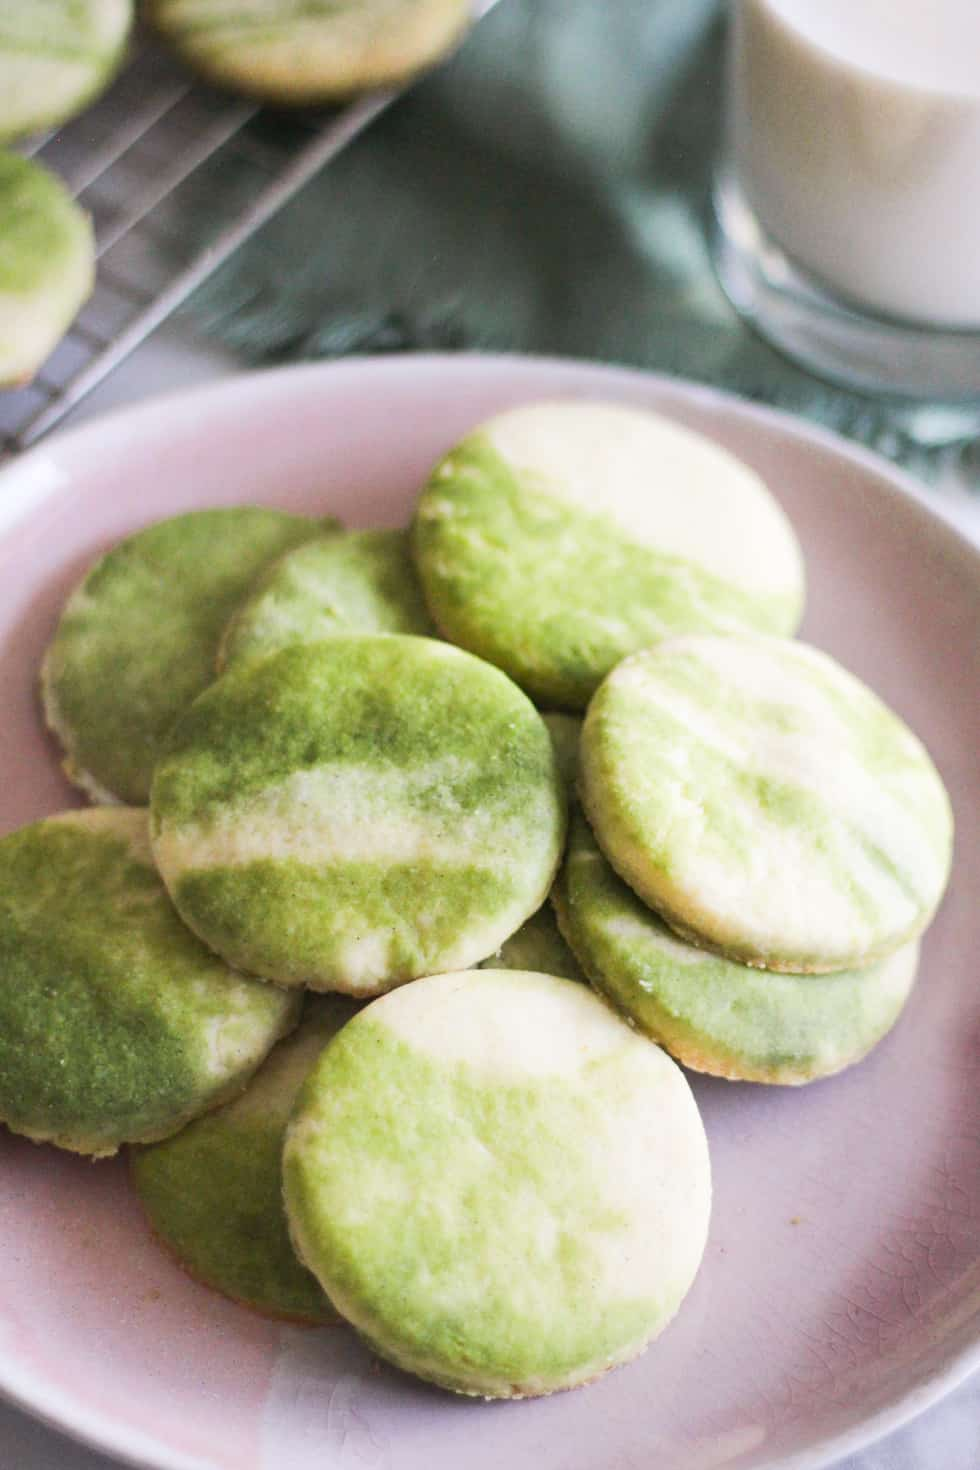 Marbled matcha sugar cookies on a pink plate.